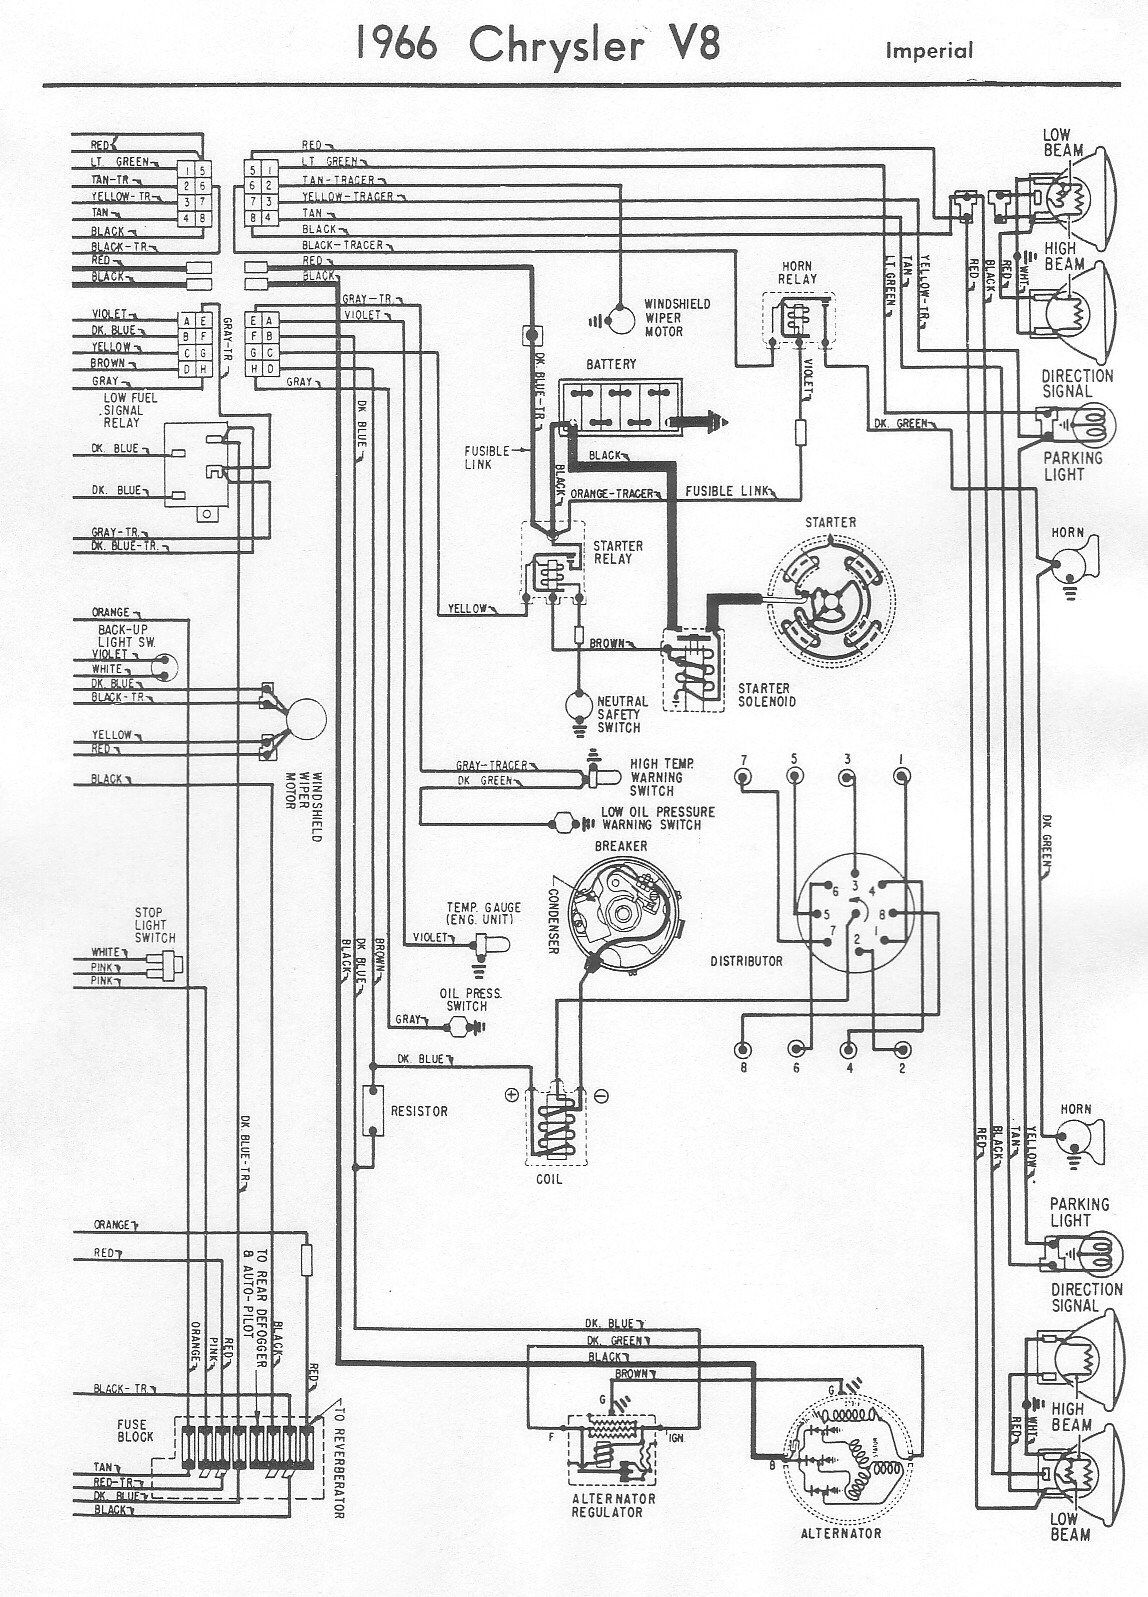 2011 Workhorse Wiring Diagram The Portal And Forum Of 2005 Chassis Free Download Schematic Rh 43 Fuenfuhrtee In Kiribati De Gmc Brake Light